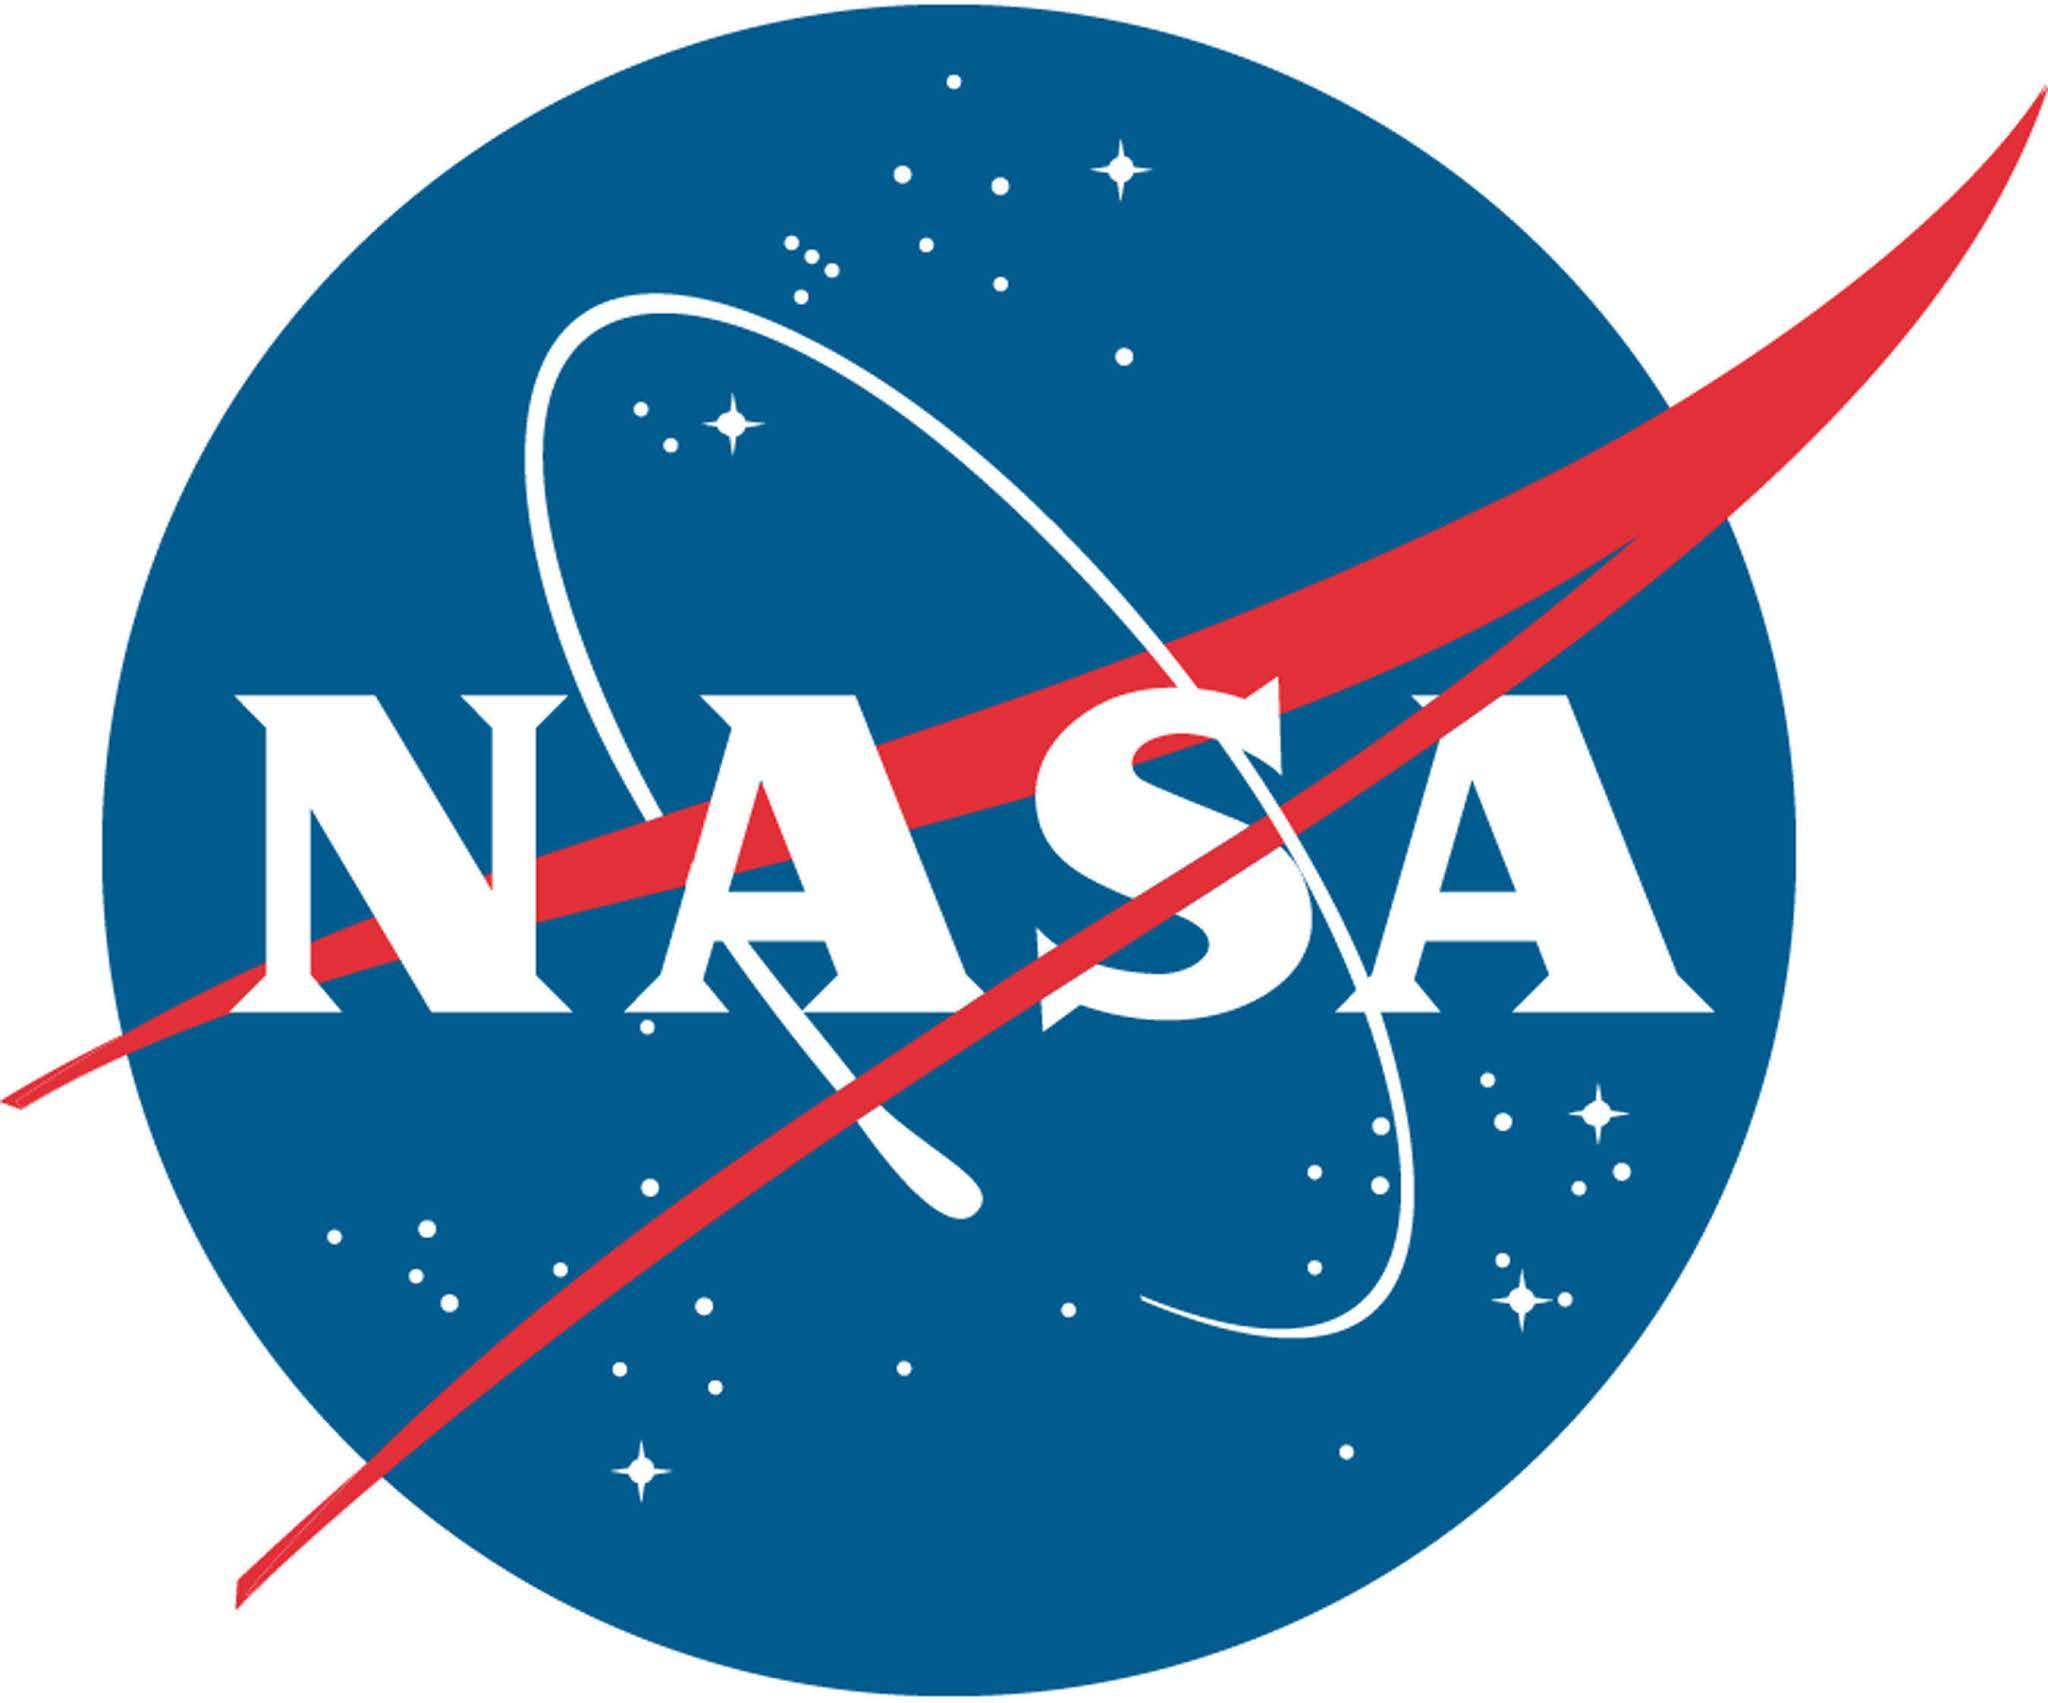 Sen. Bill Nelson Statement on National Space Council